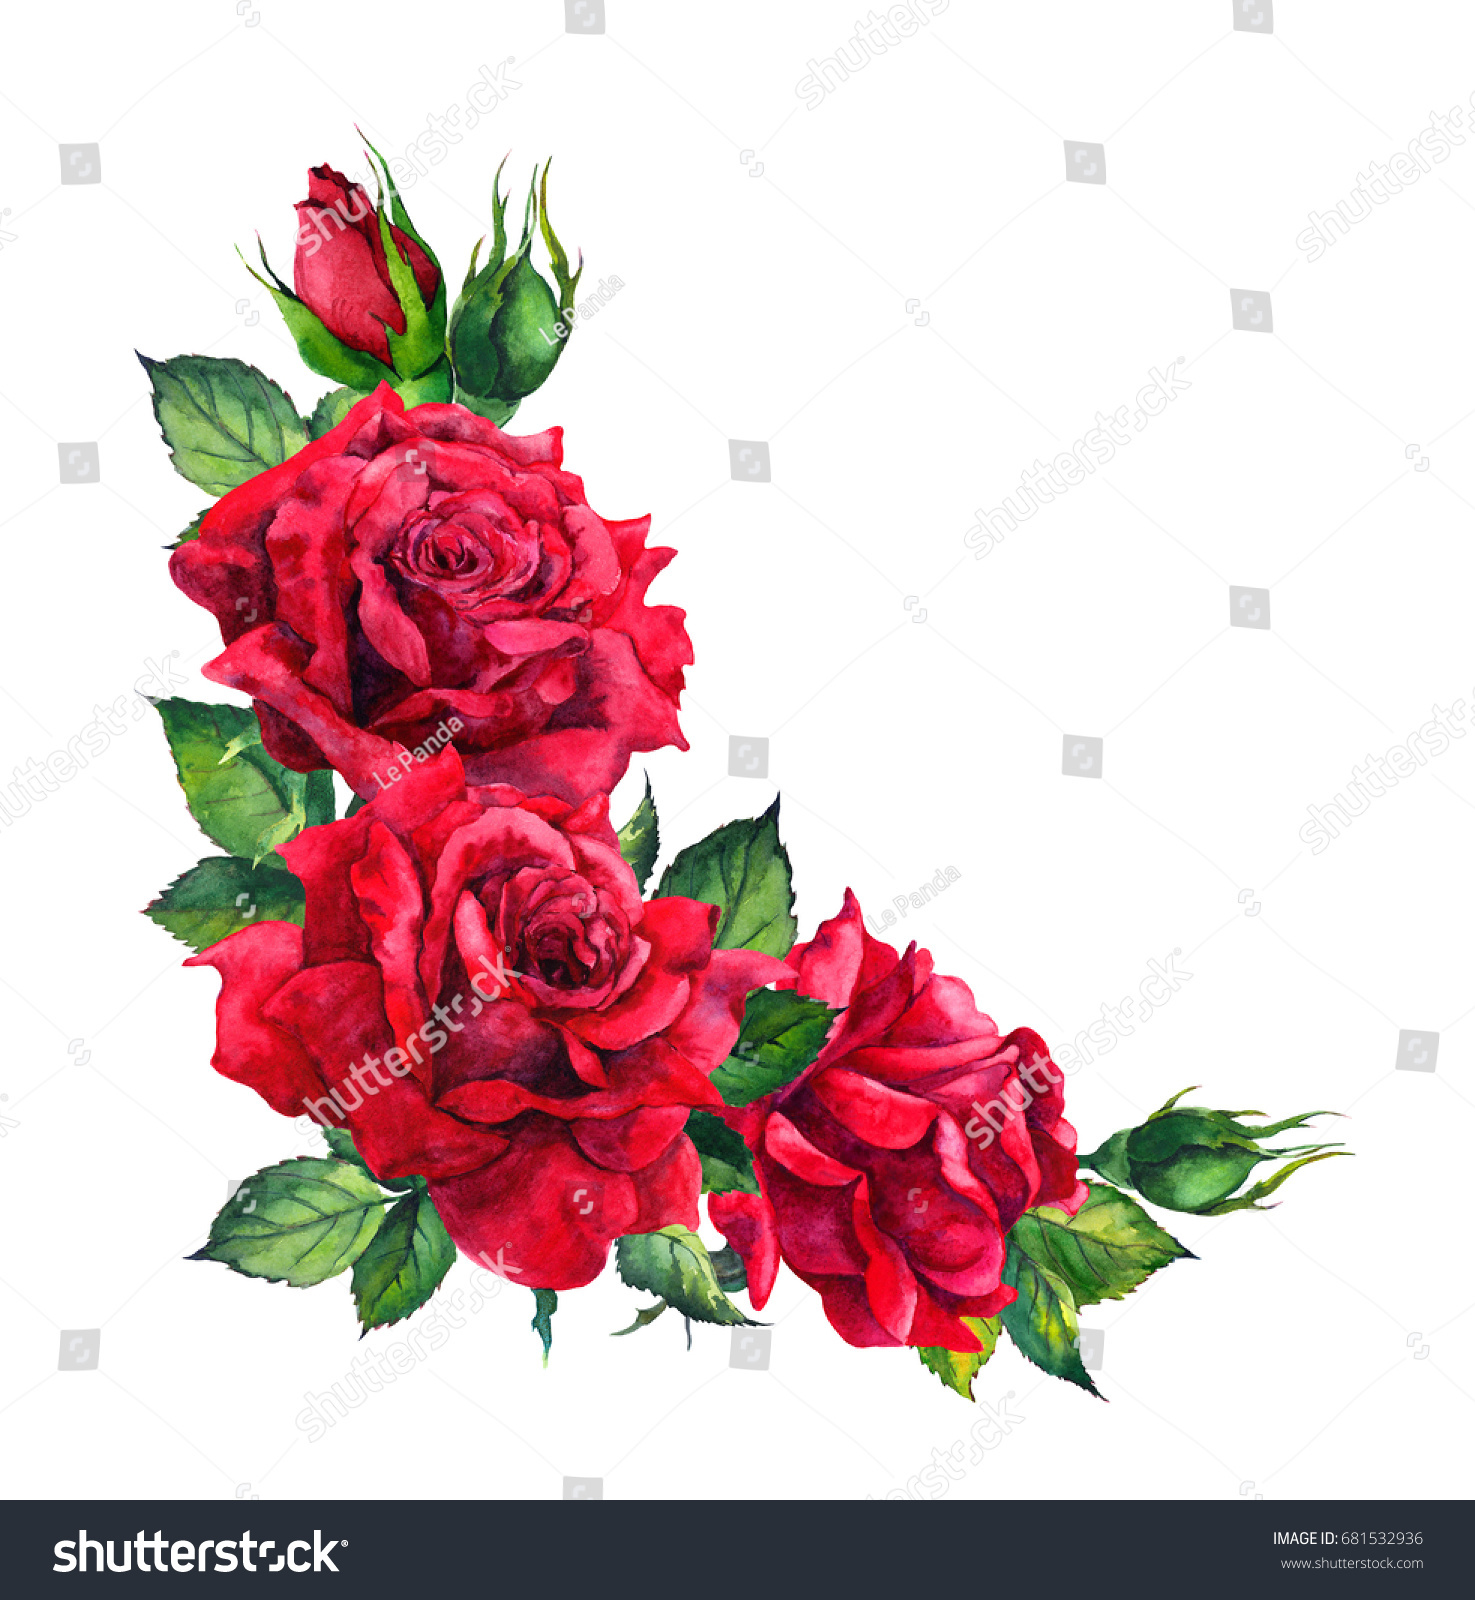 Bien connu Red Roses Corner Floral Composition Watercolor Stock Illustration  BP45